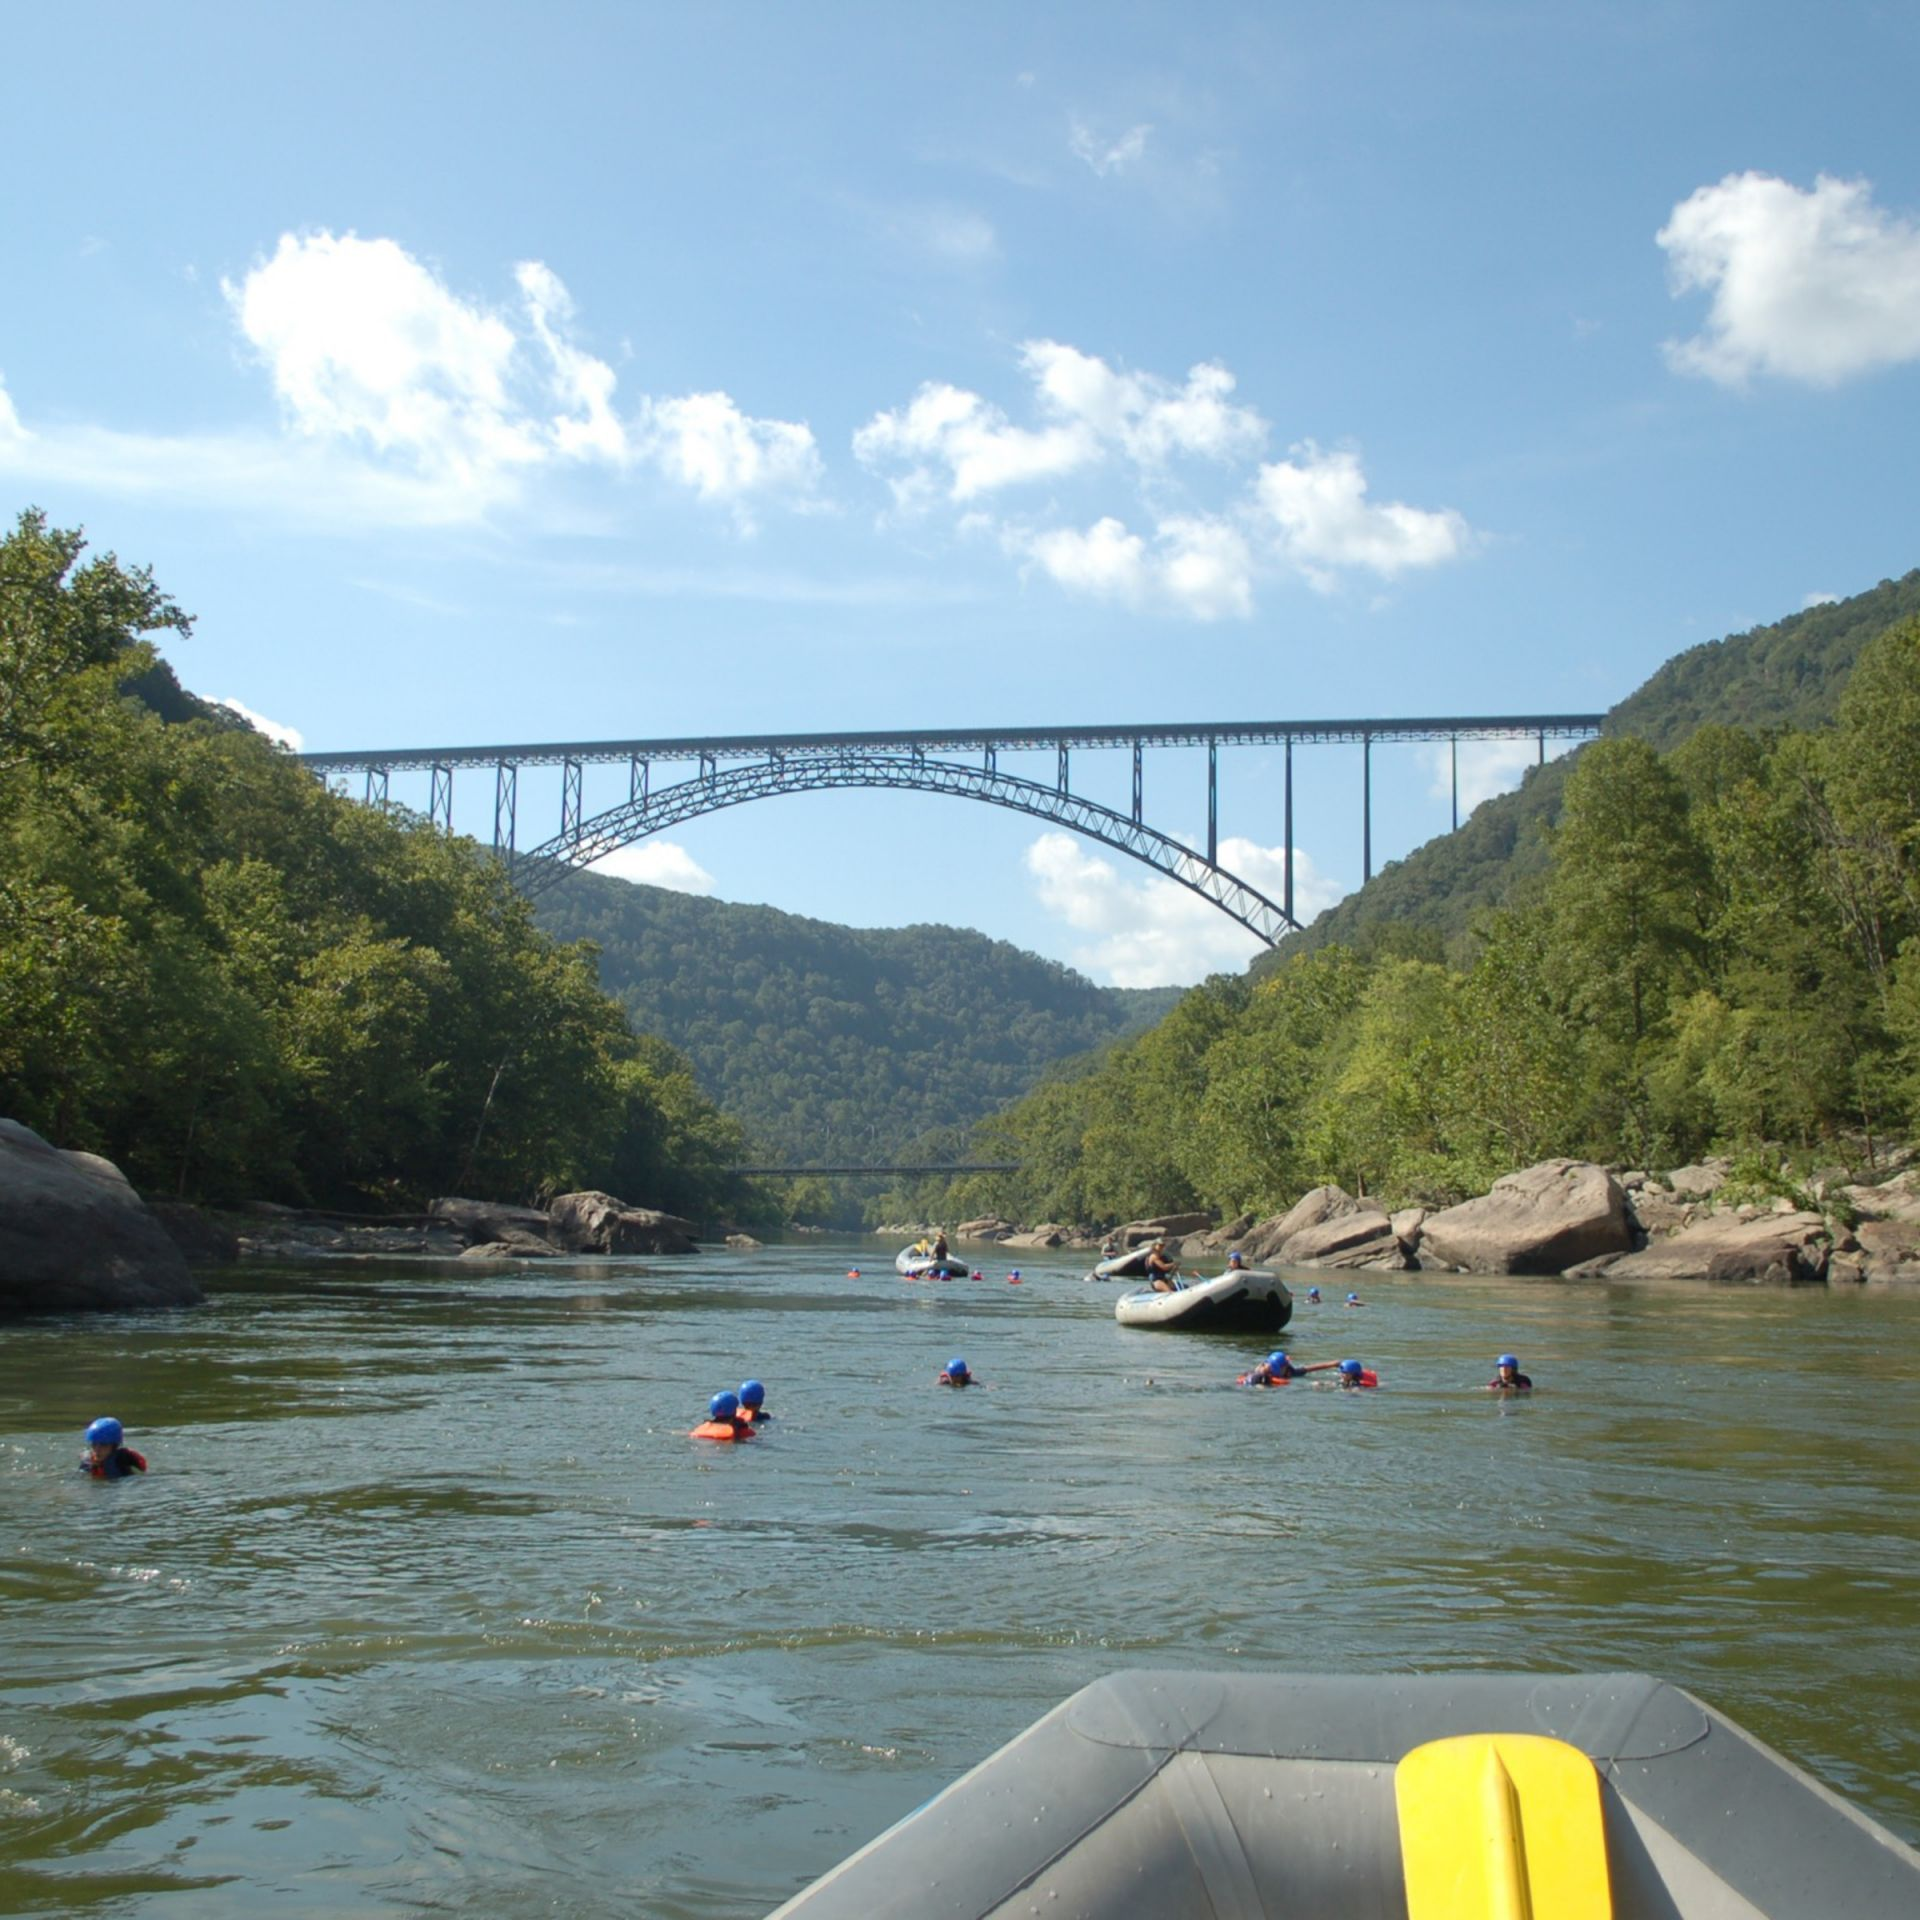 Rafting along the Lower New River, WV.